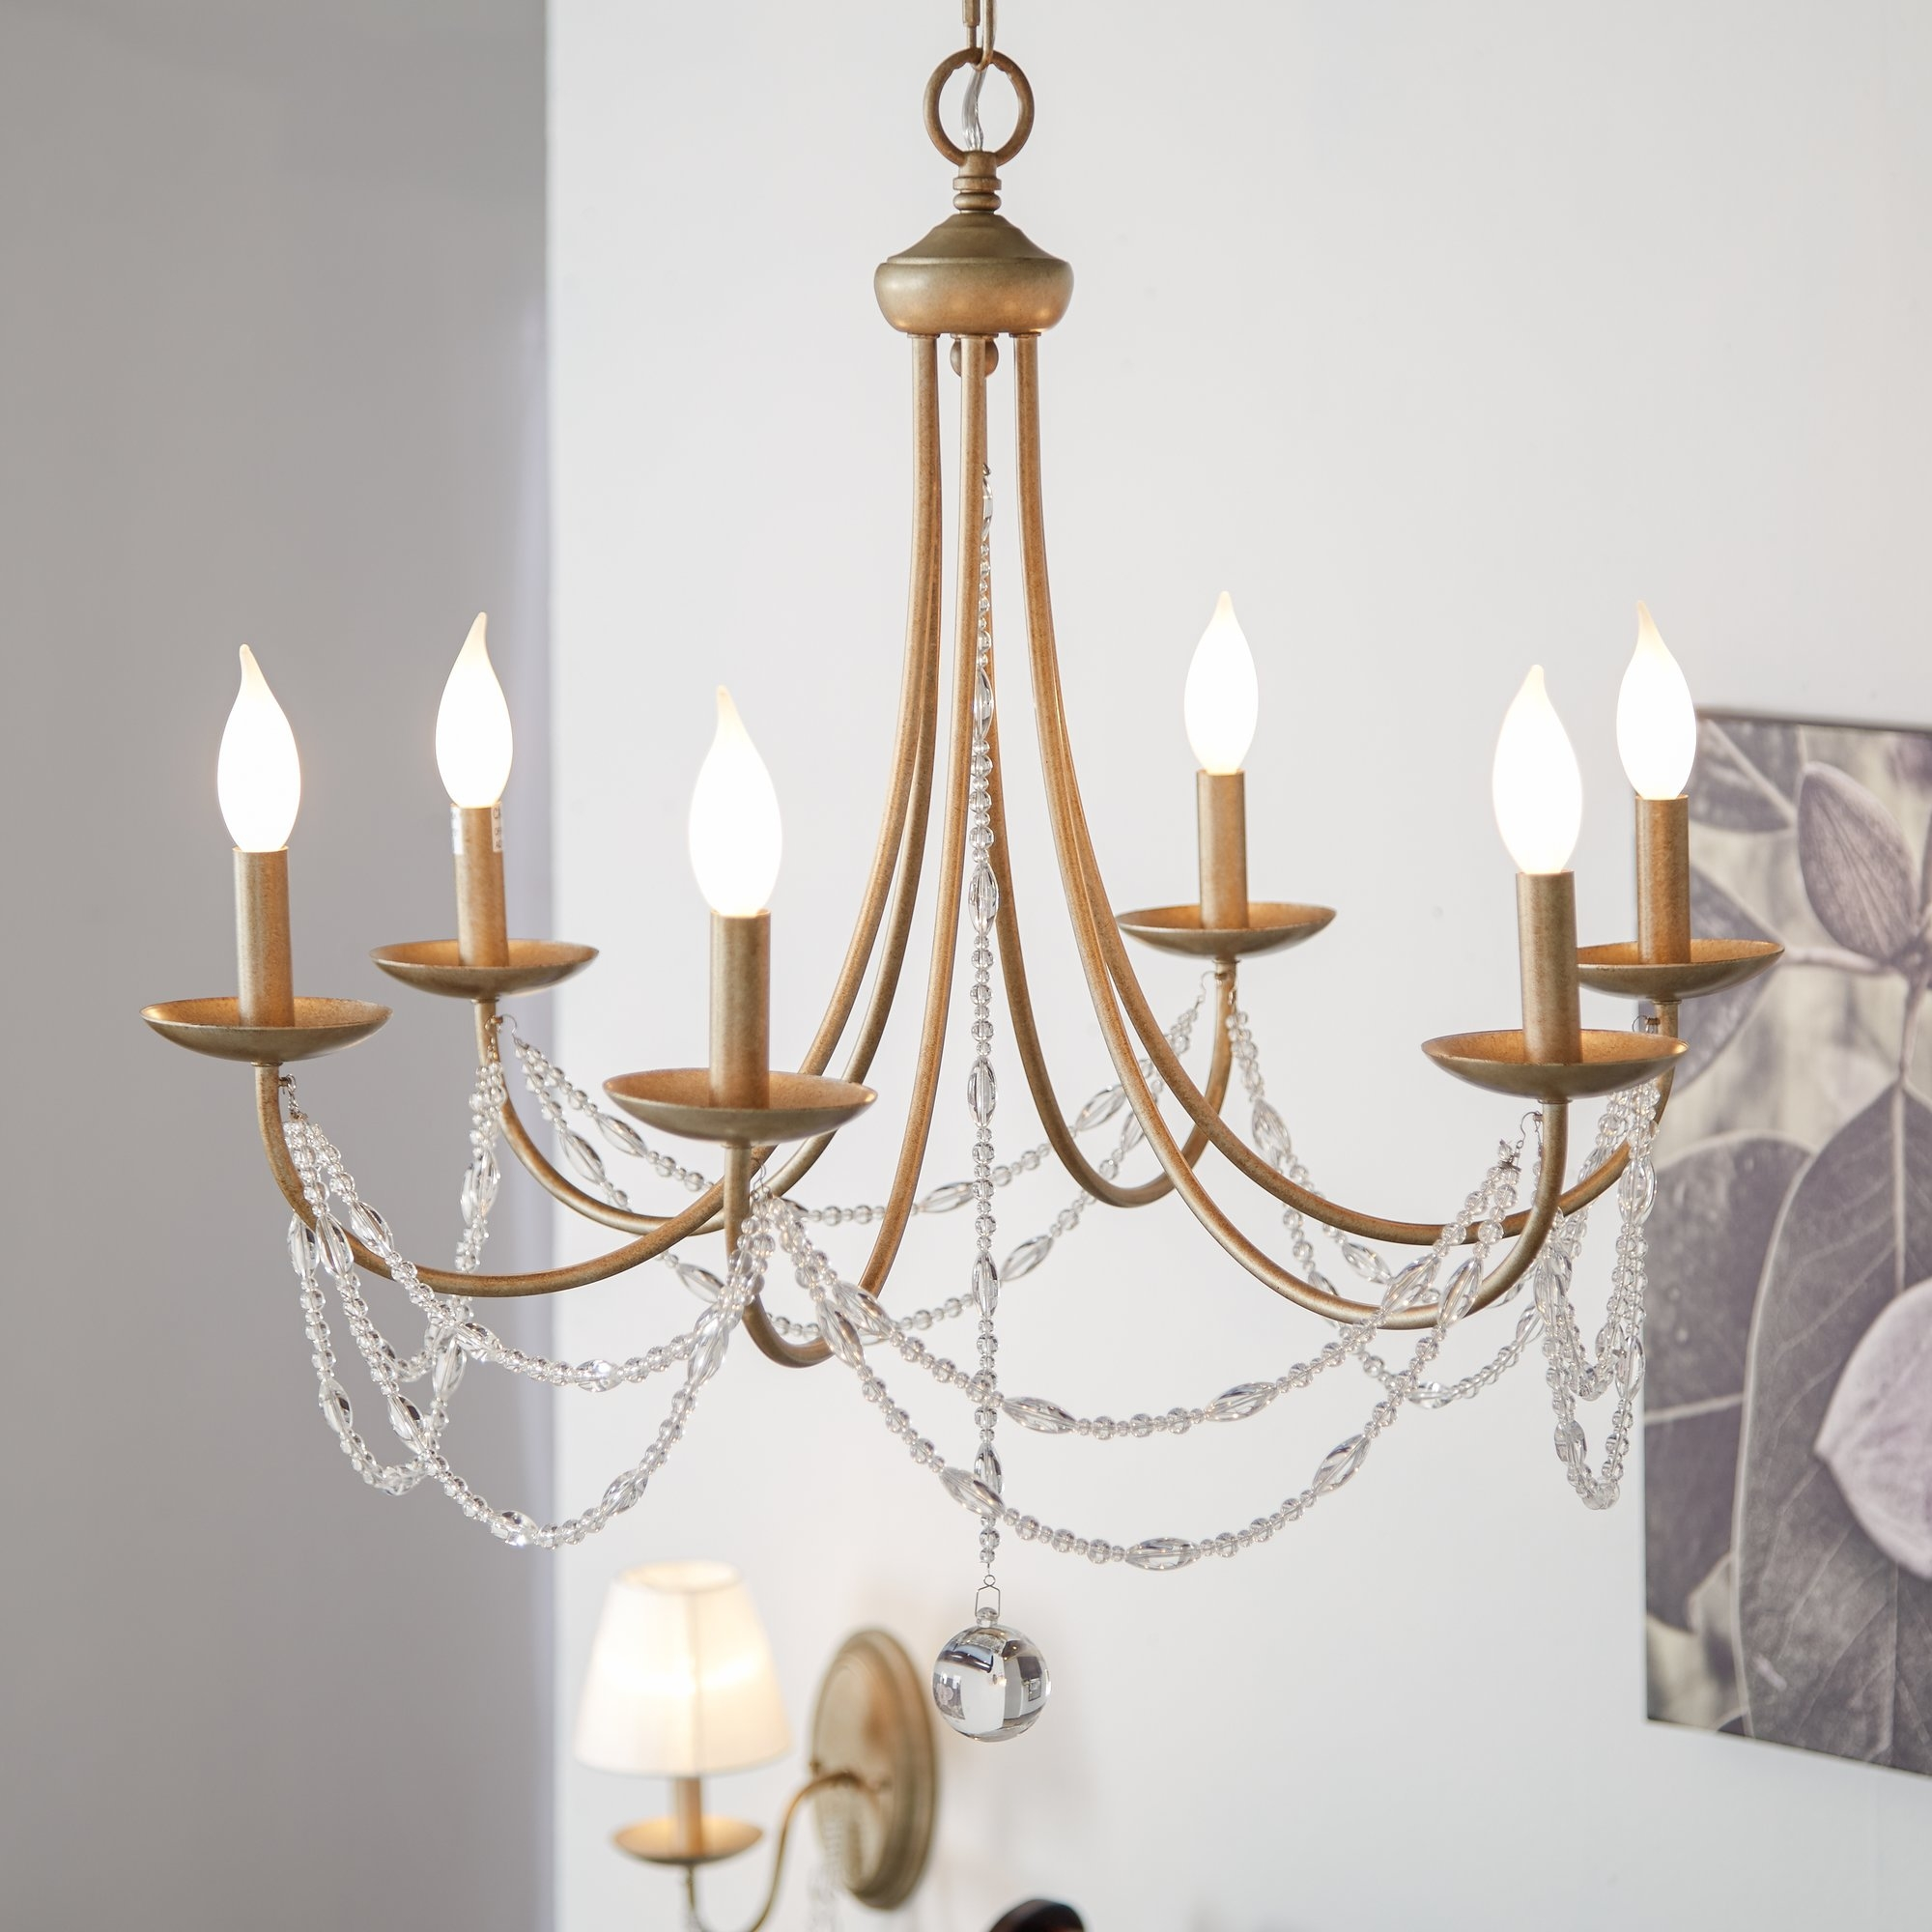 Traditional Chandeliers Youll Love Wayfair Pertaining To Traditional Chandeliers (Image 15 of 15)